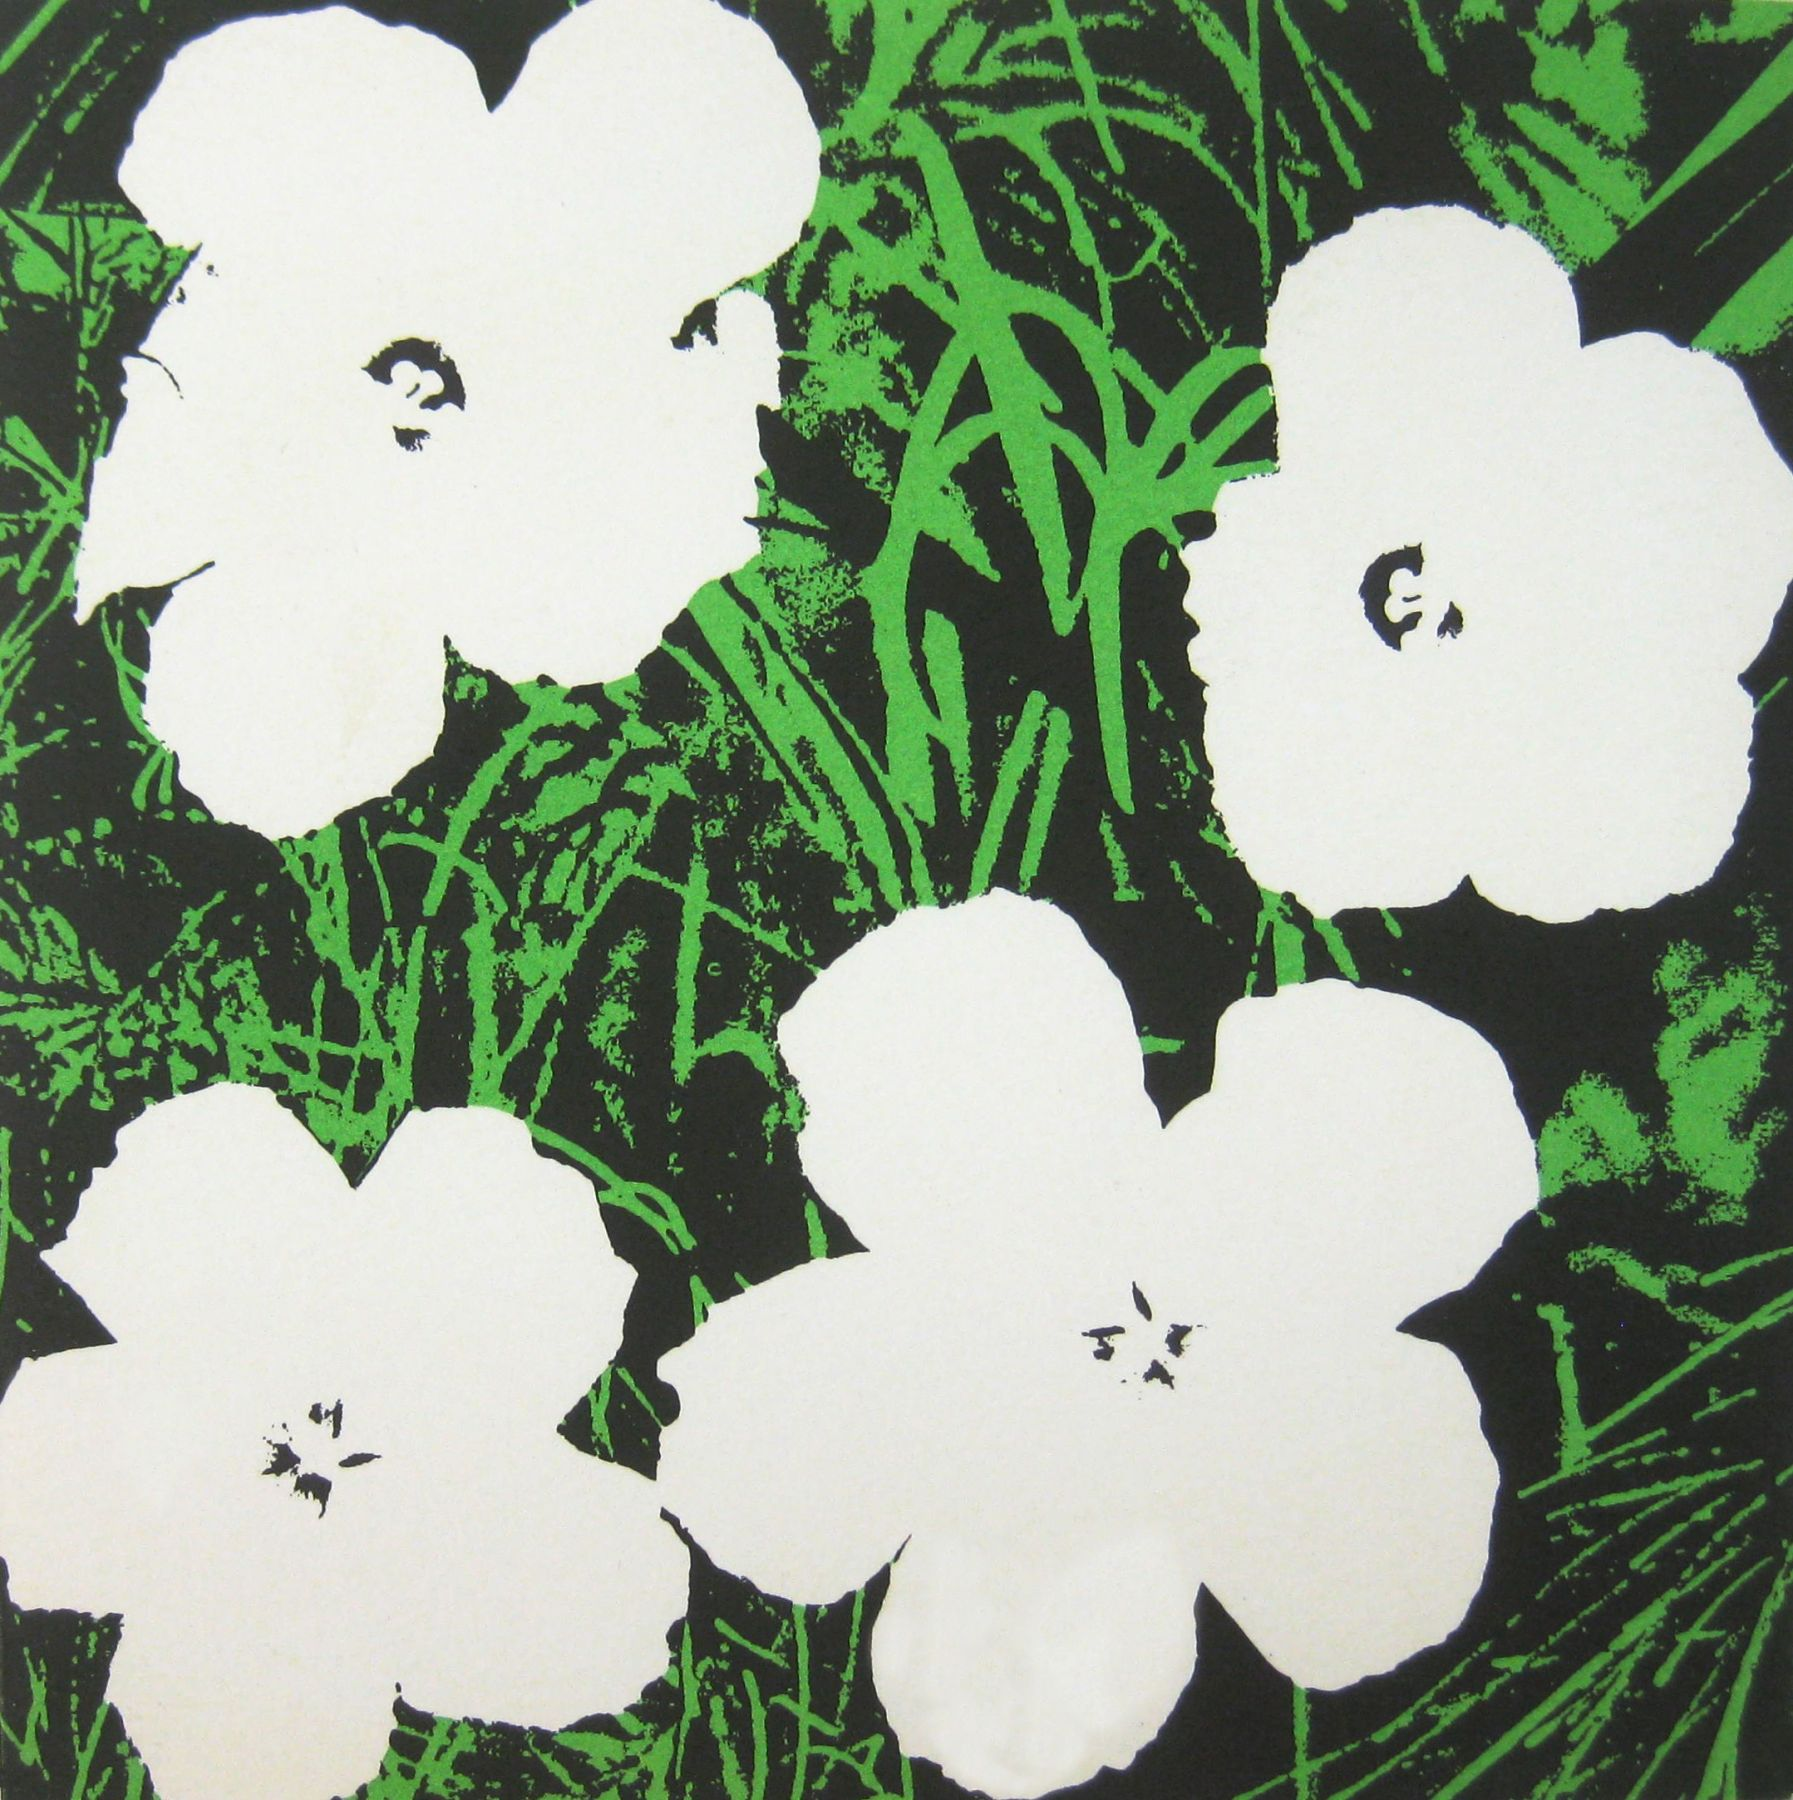 """ANDY WARHOL. """"Flowers (MoMA)"""". 1965. Image courtesy of Alden Projects™, New York"""